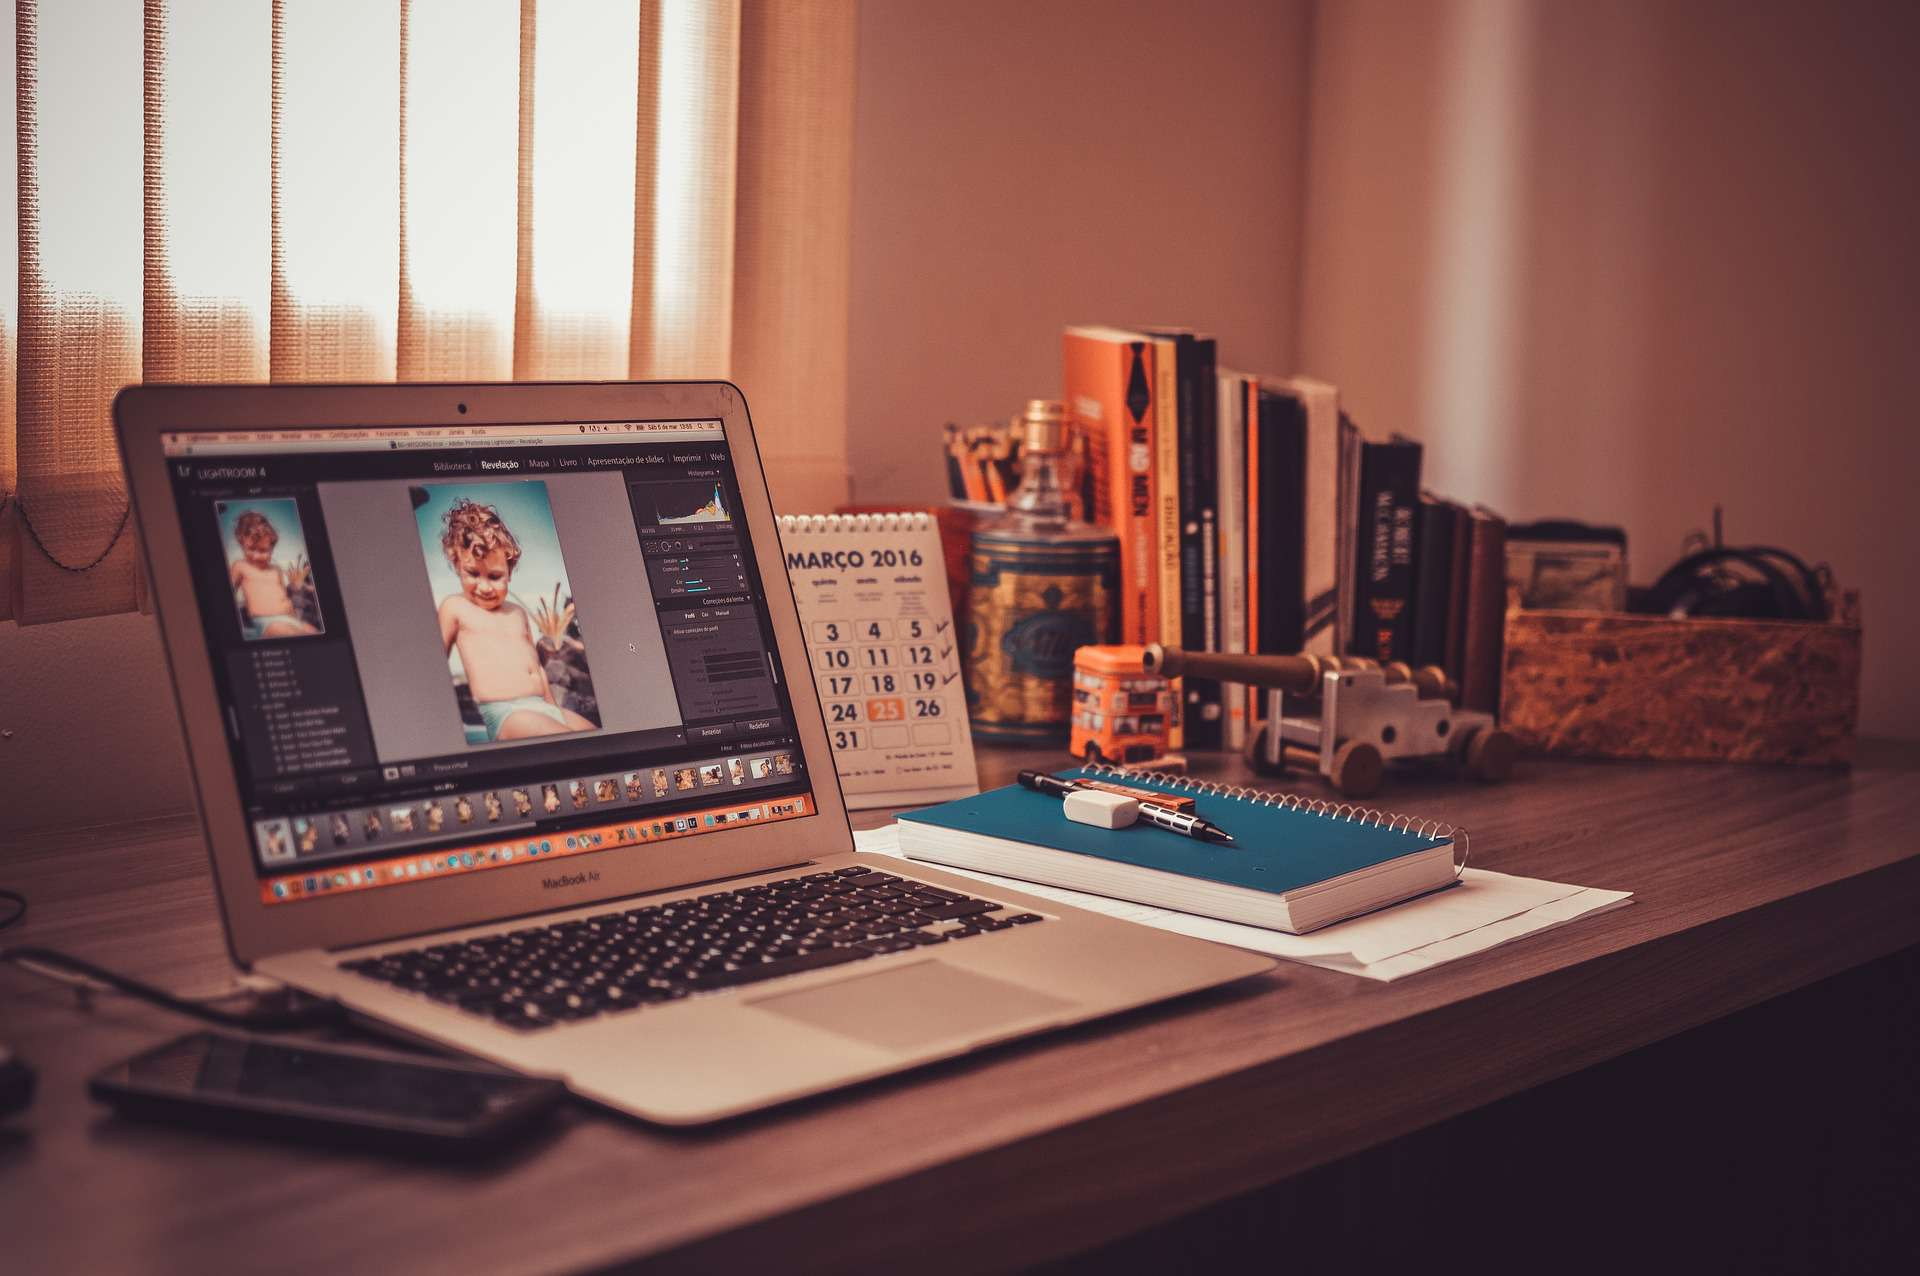 Graphic design software on laptop in home office